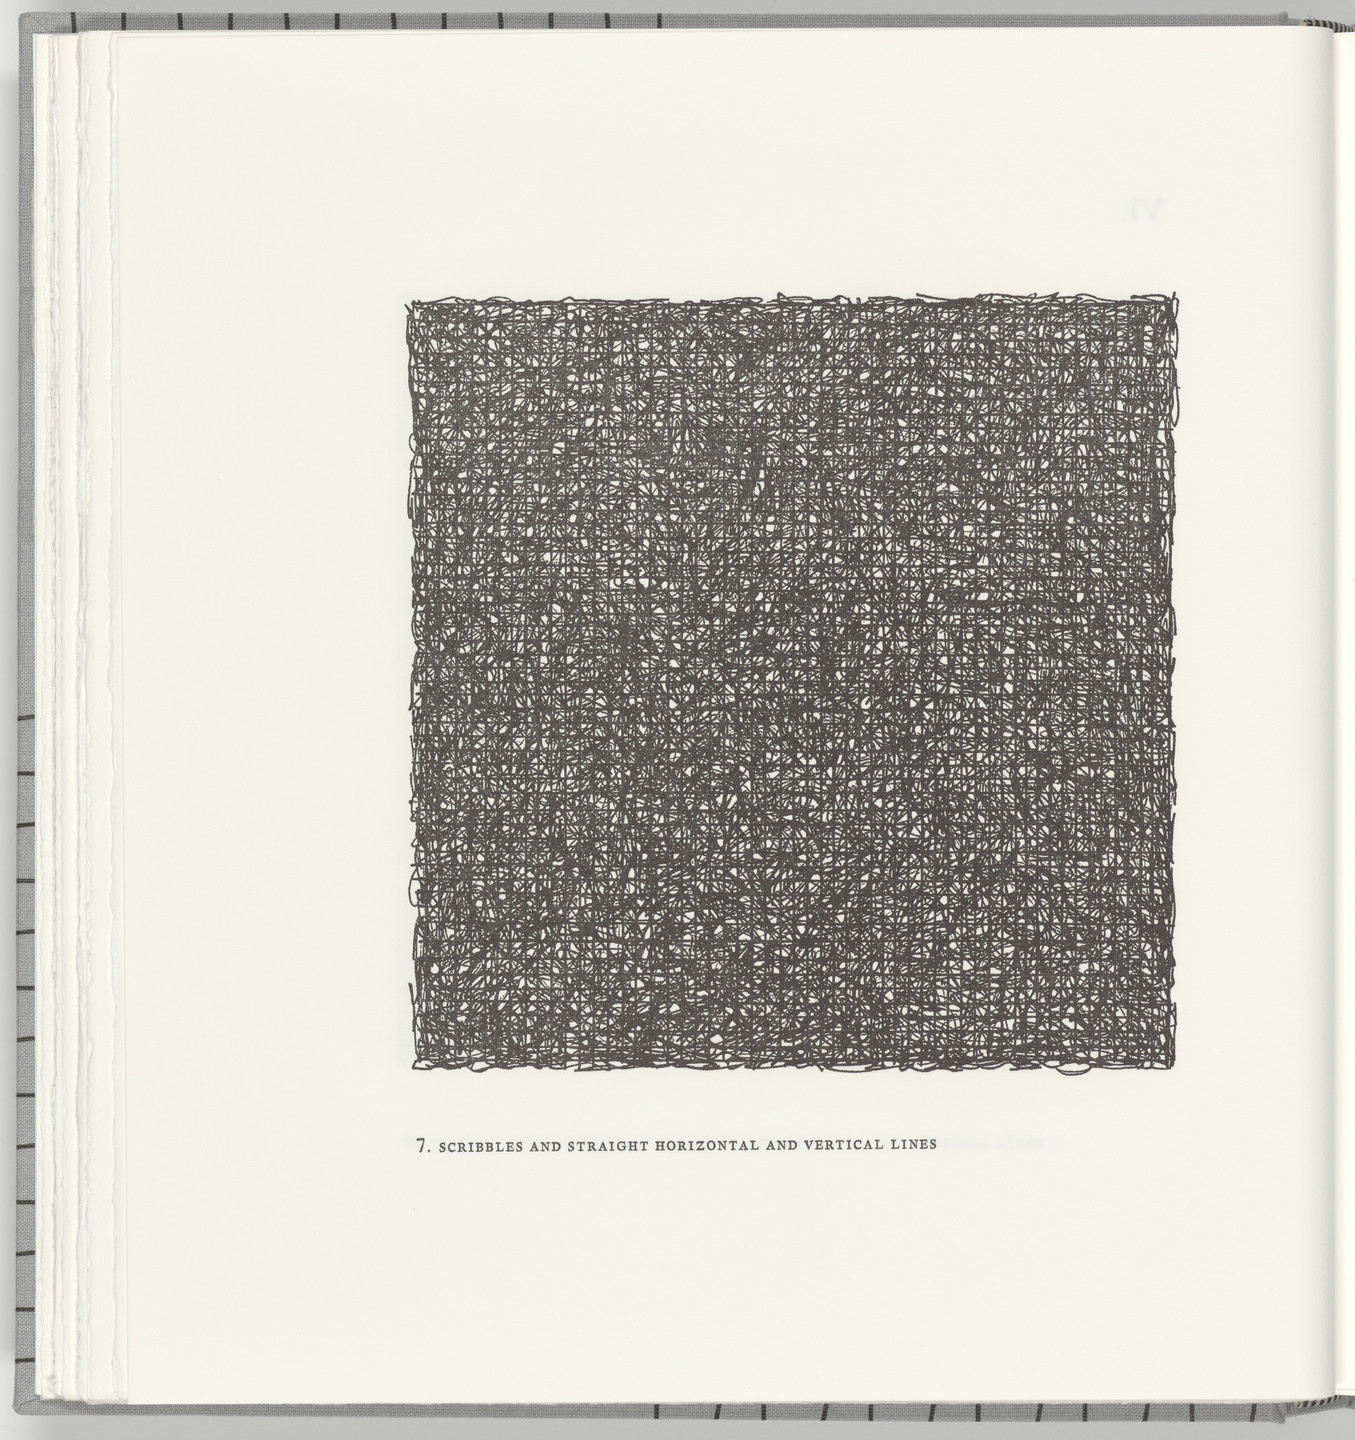 Sol LeWitt. Scribbles and Straight Horizontal and Vertical Lines (plate 7) from Squarings. 2003